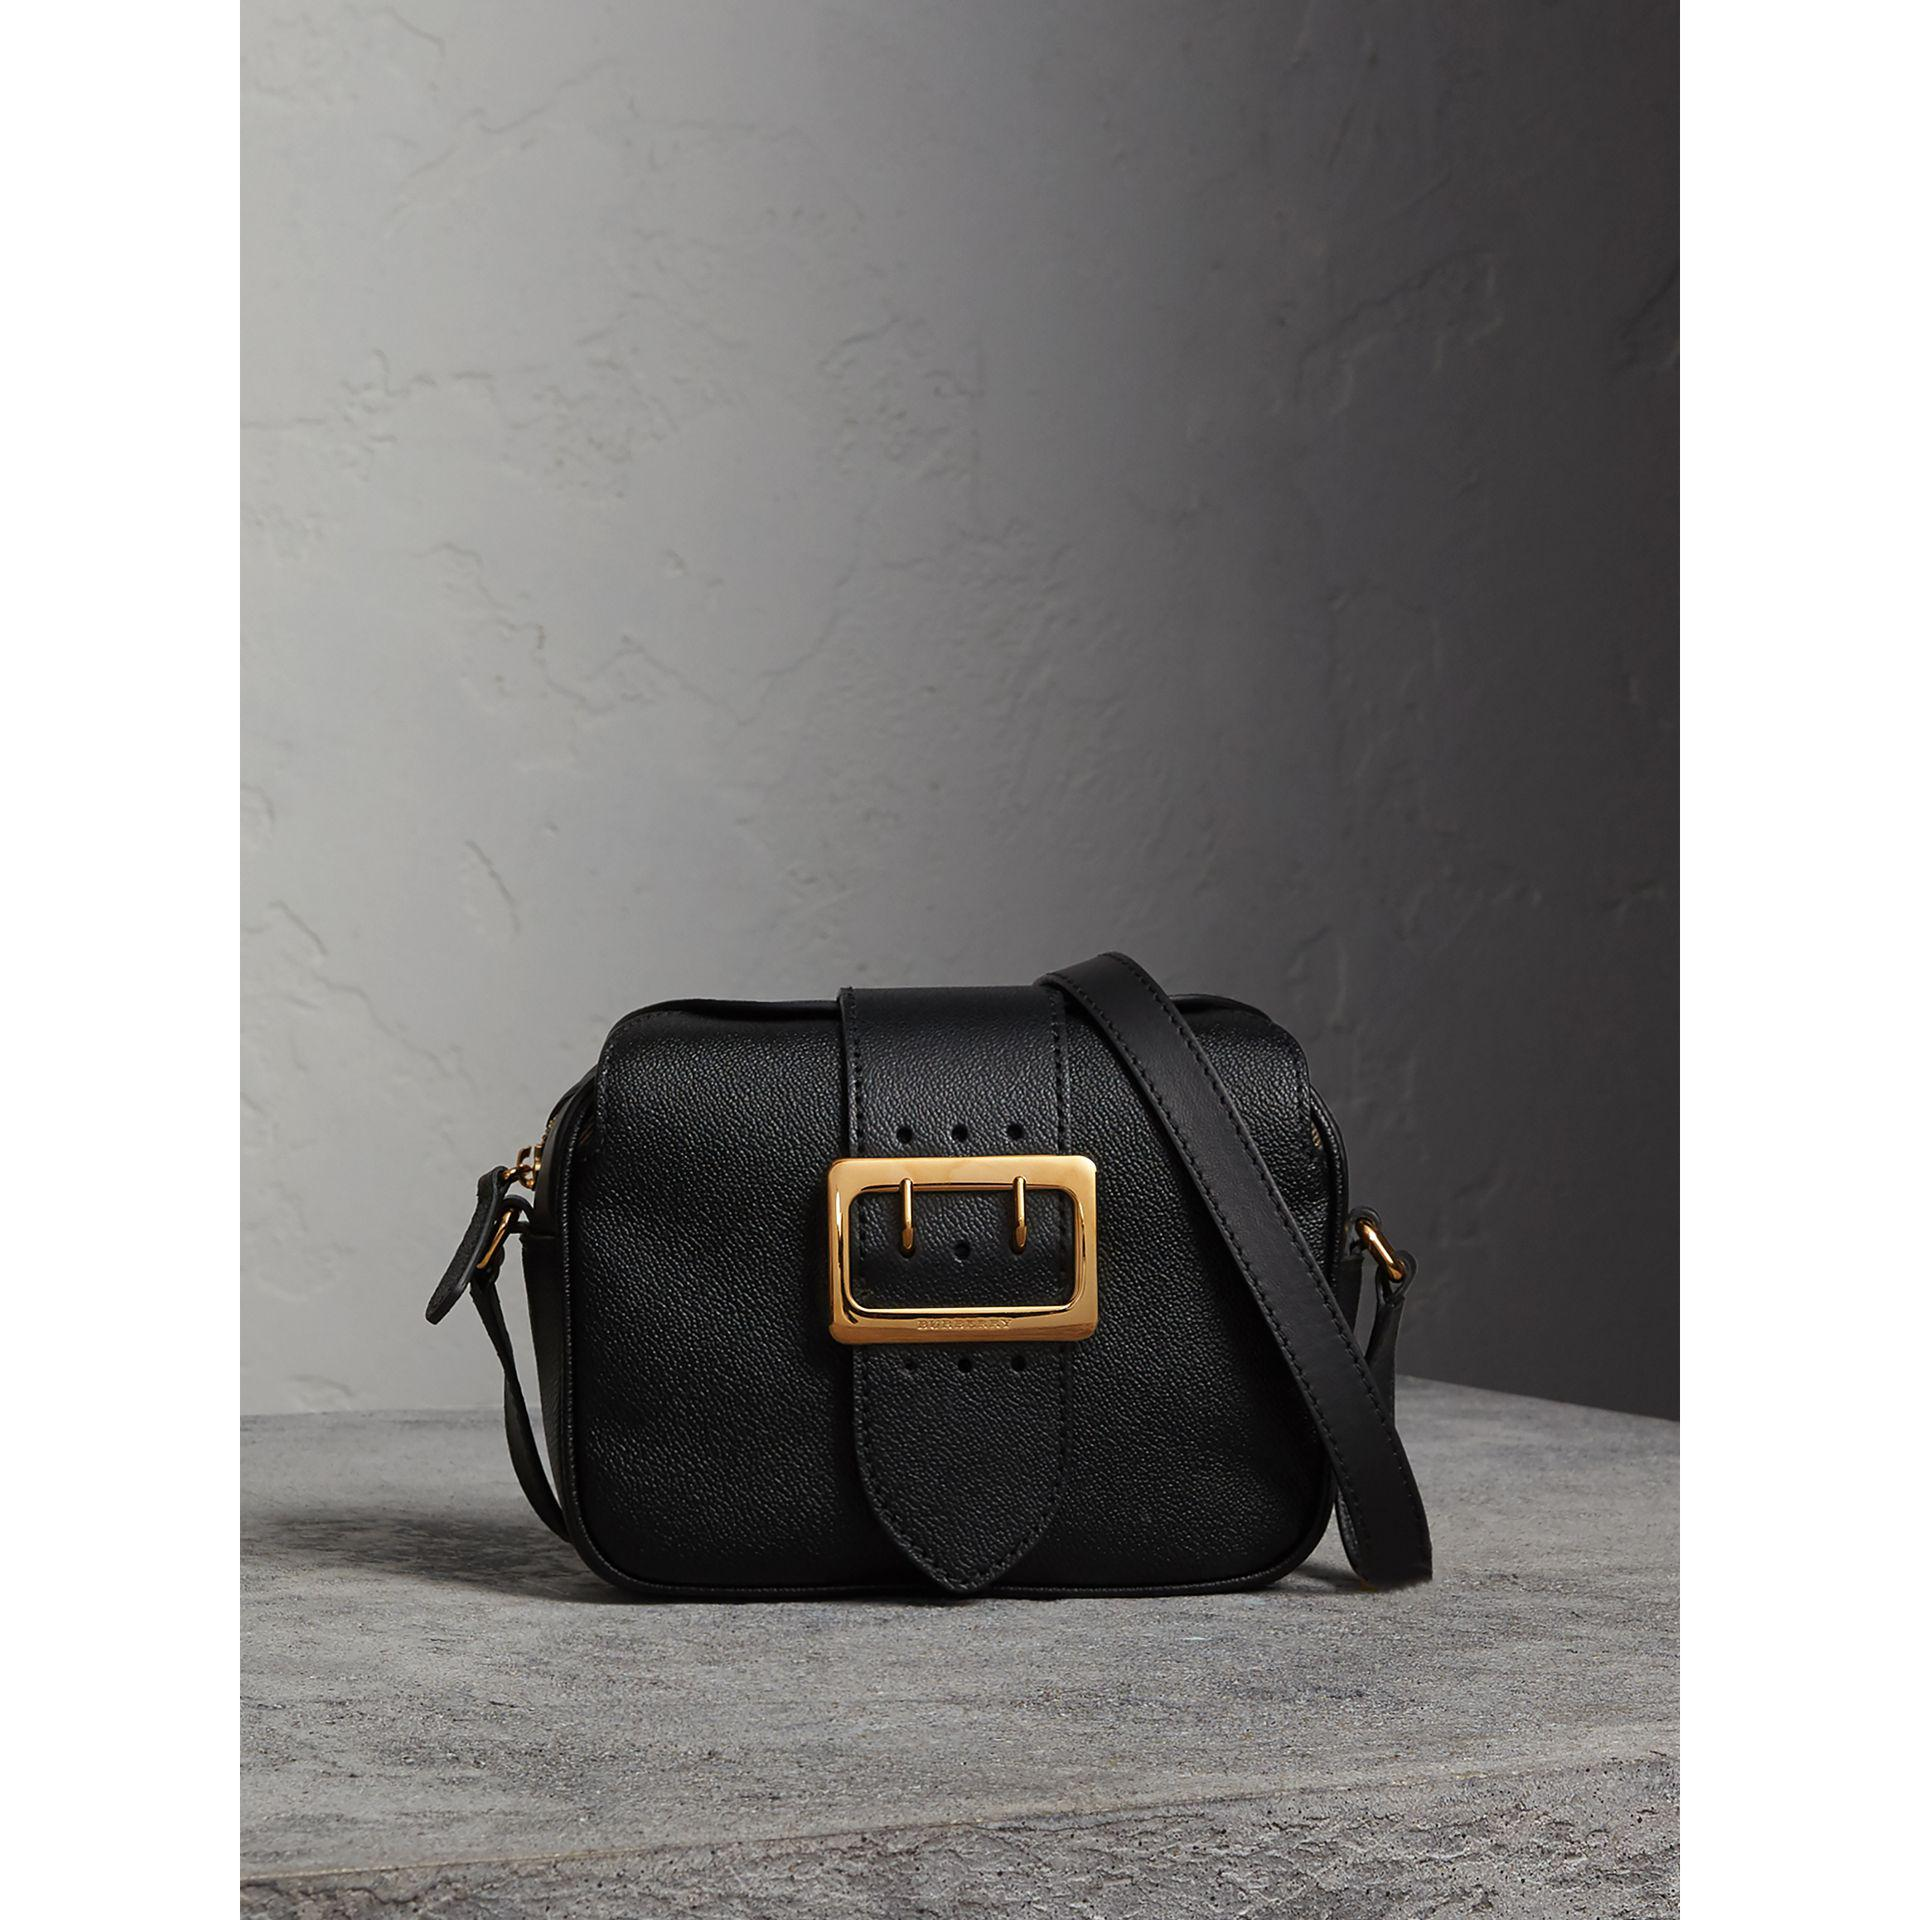 340d9b7fa806 Lyst - Burberry The Small Buckle Crossbody Bag In Leather in Black